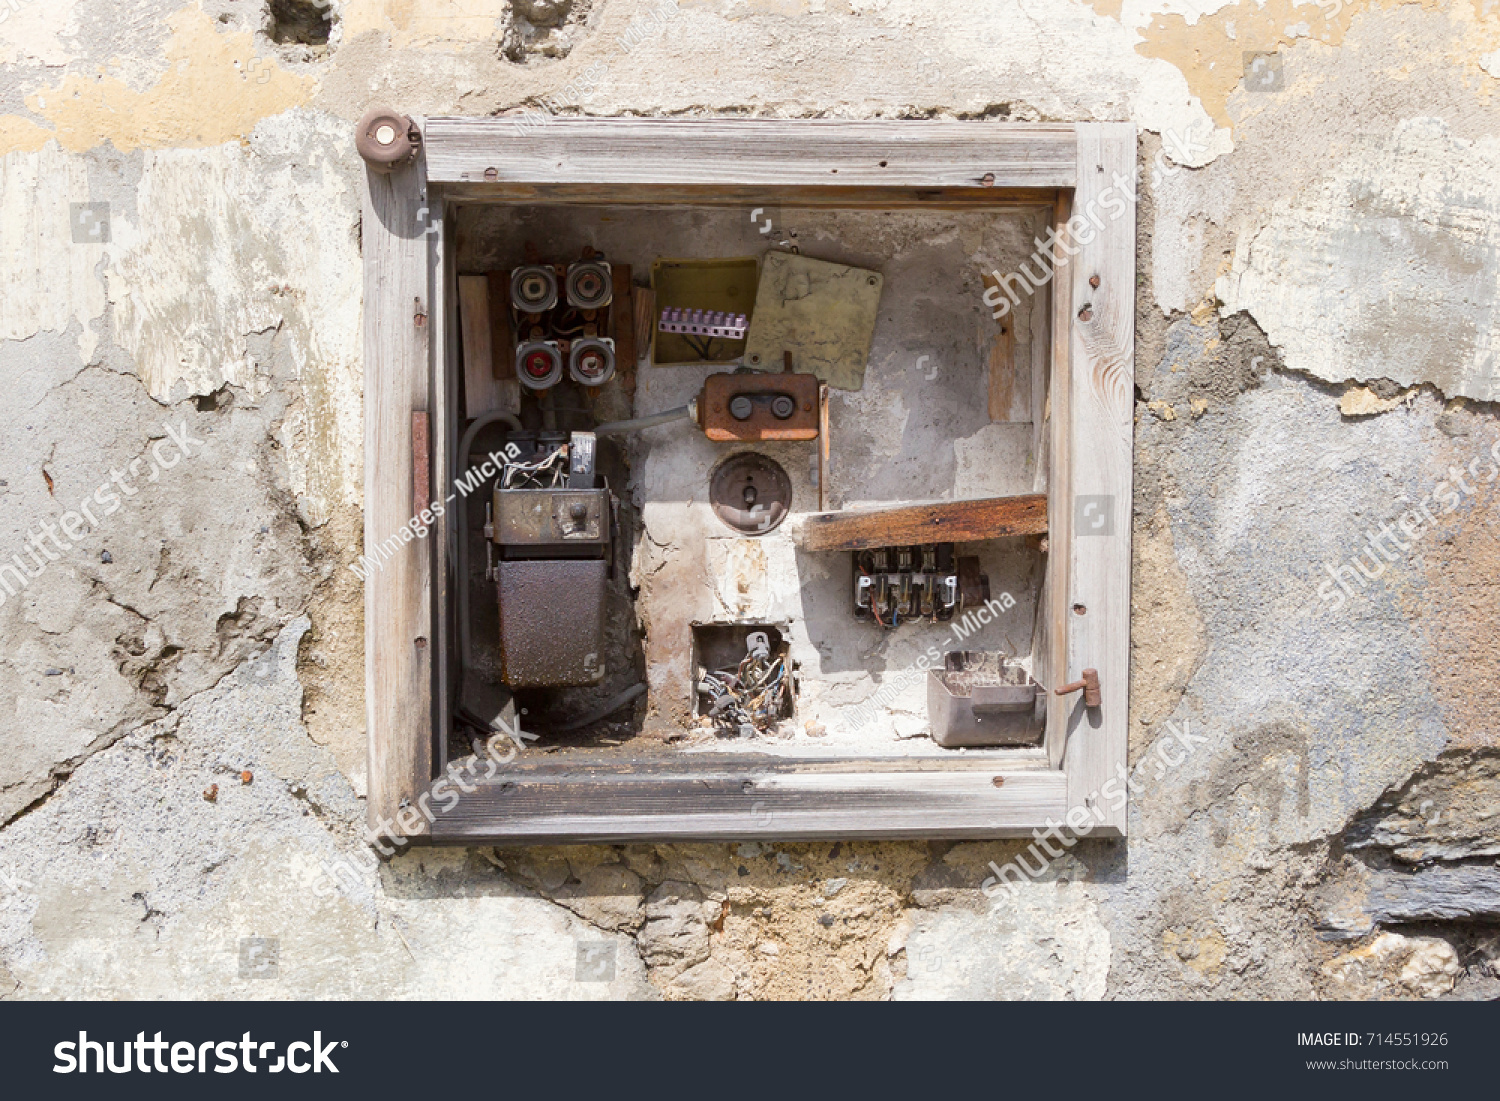 hight resolution of very old fusebox in an abandoned house